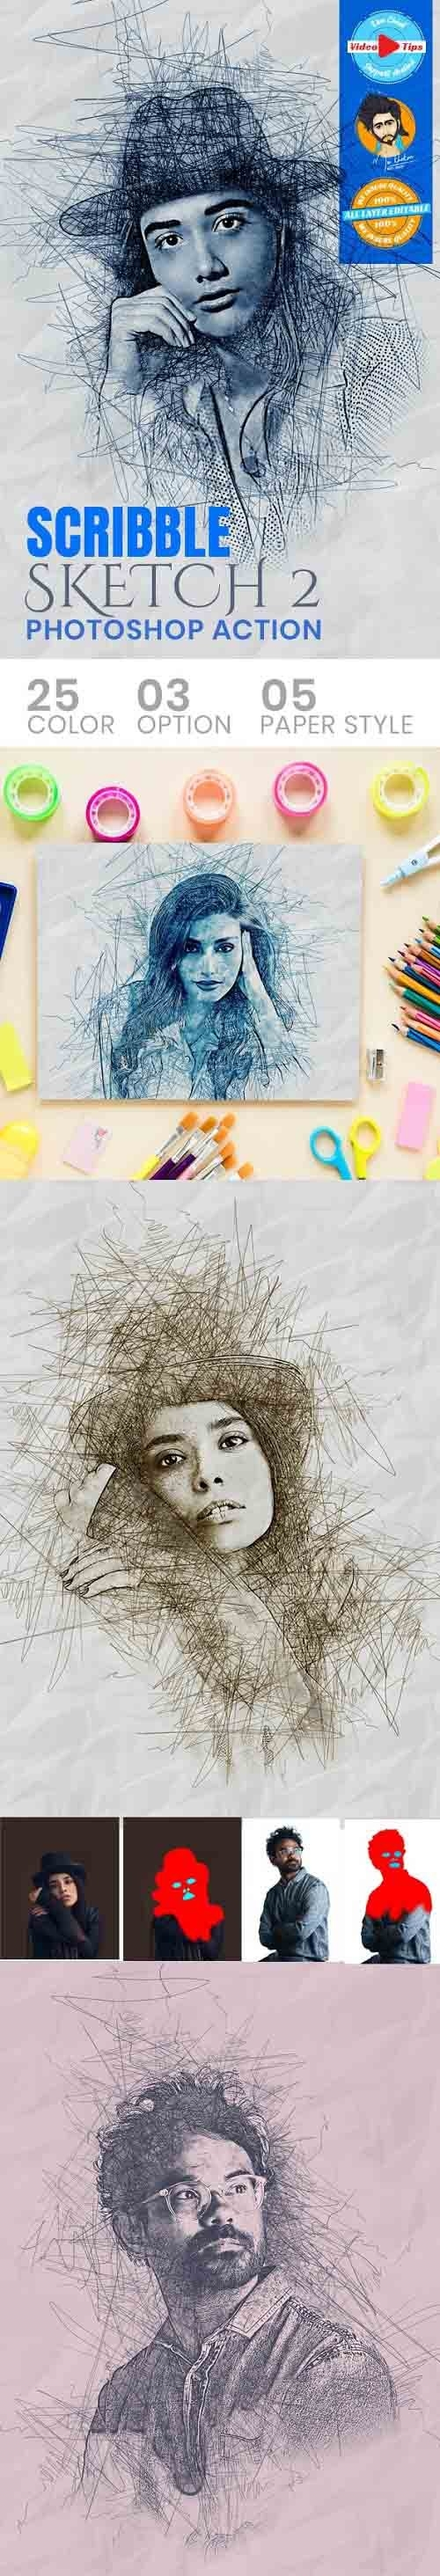 GraphicRiver - Scribble Sketch Photoshop Action 31050617